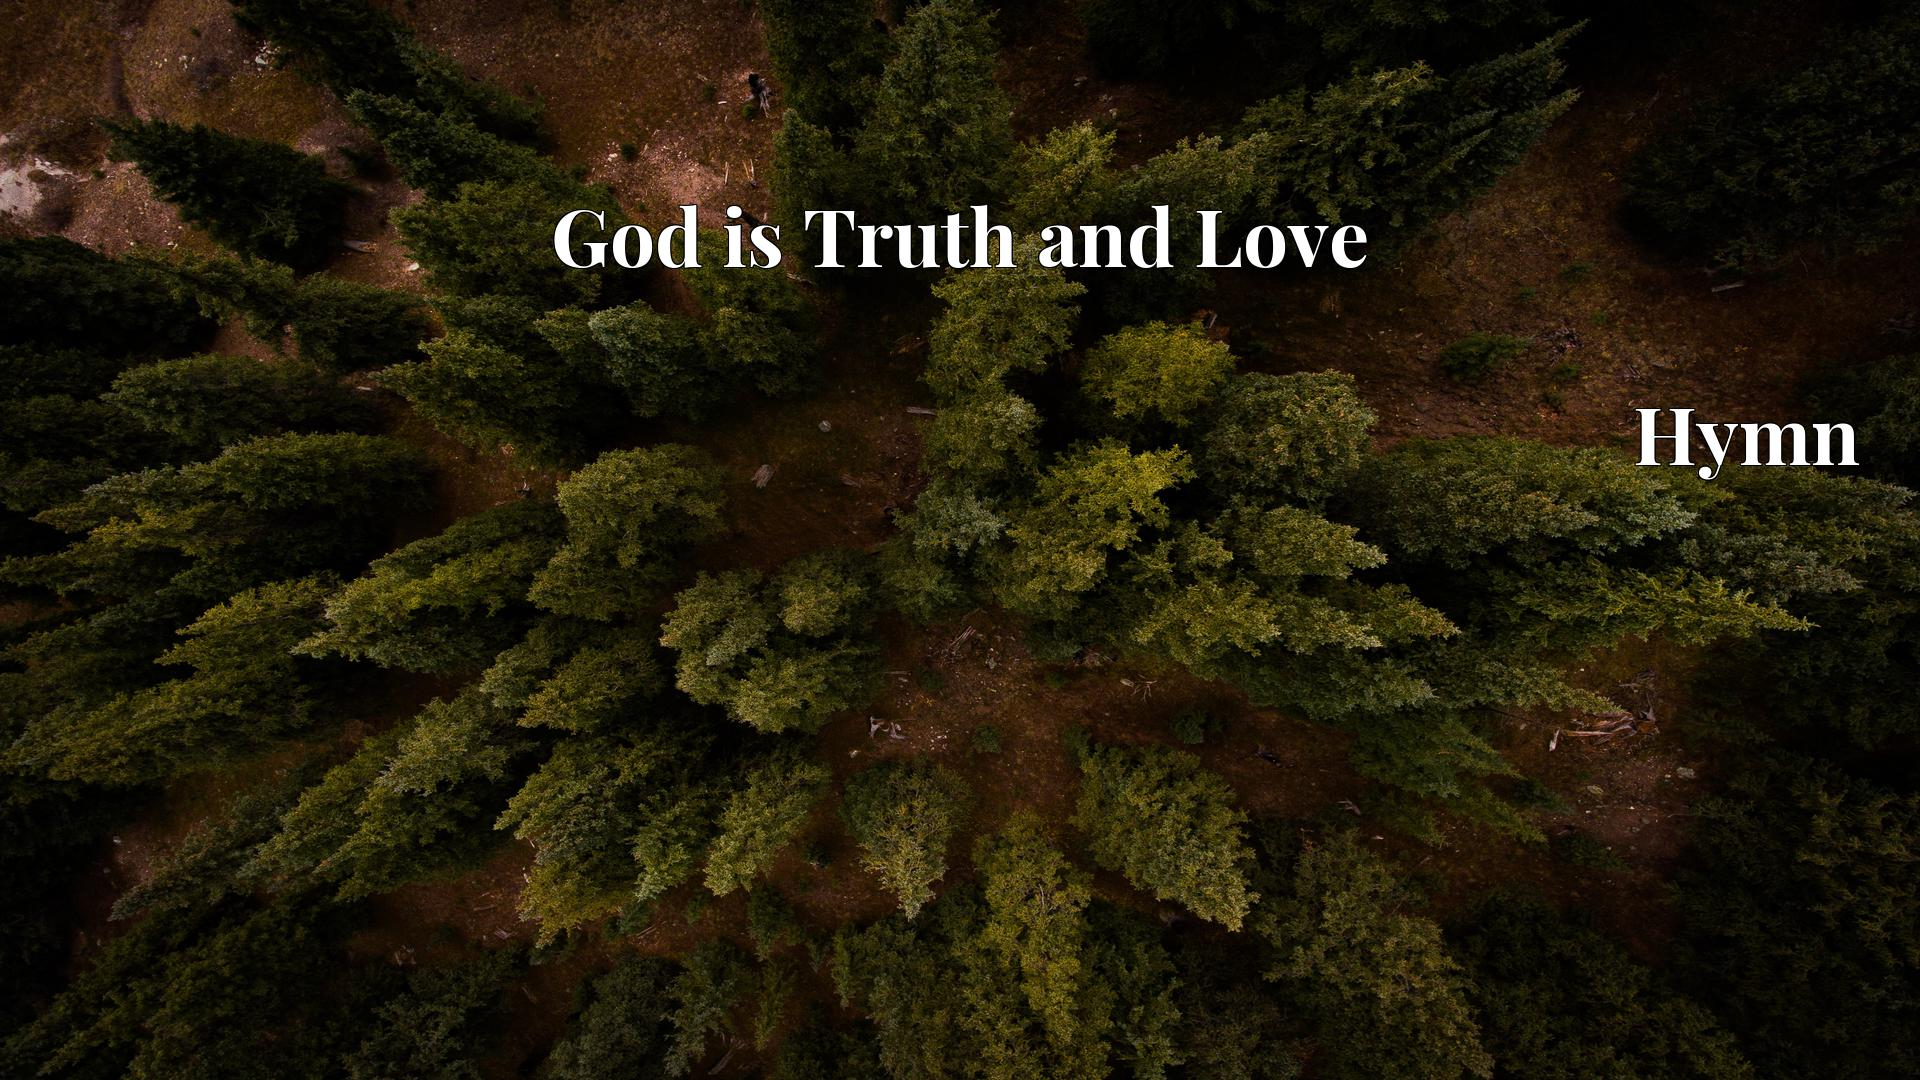 God is Truth and Love Hymn